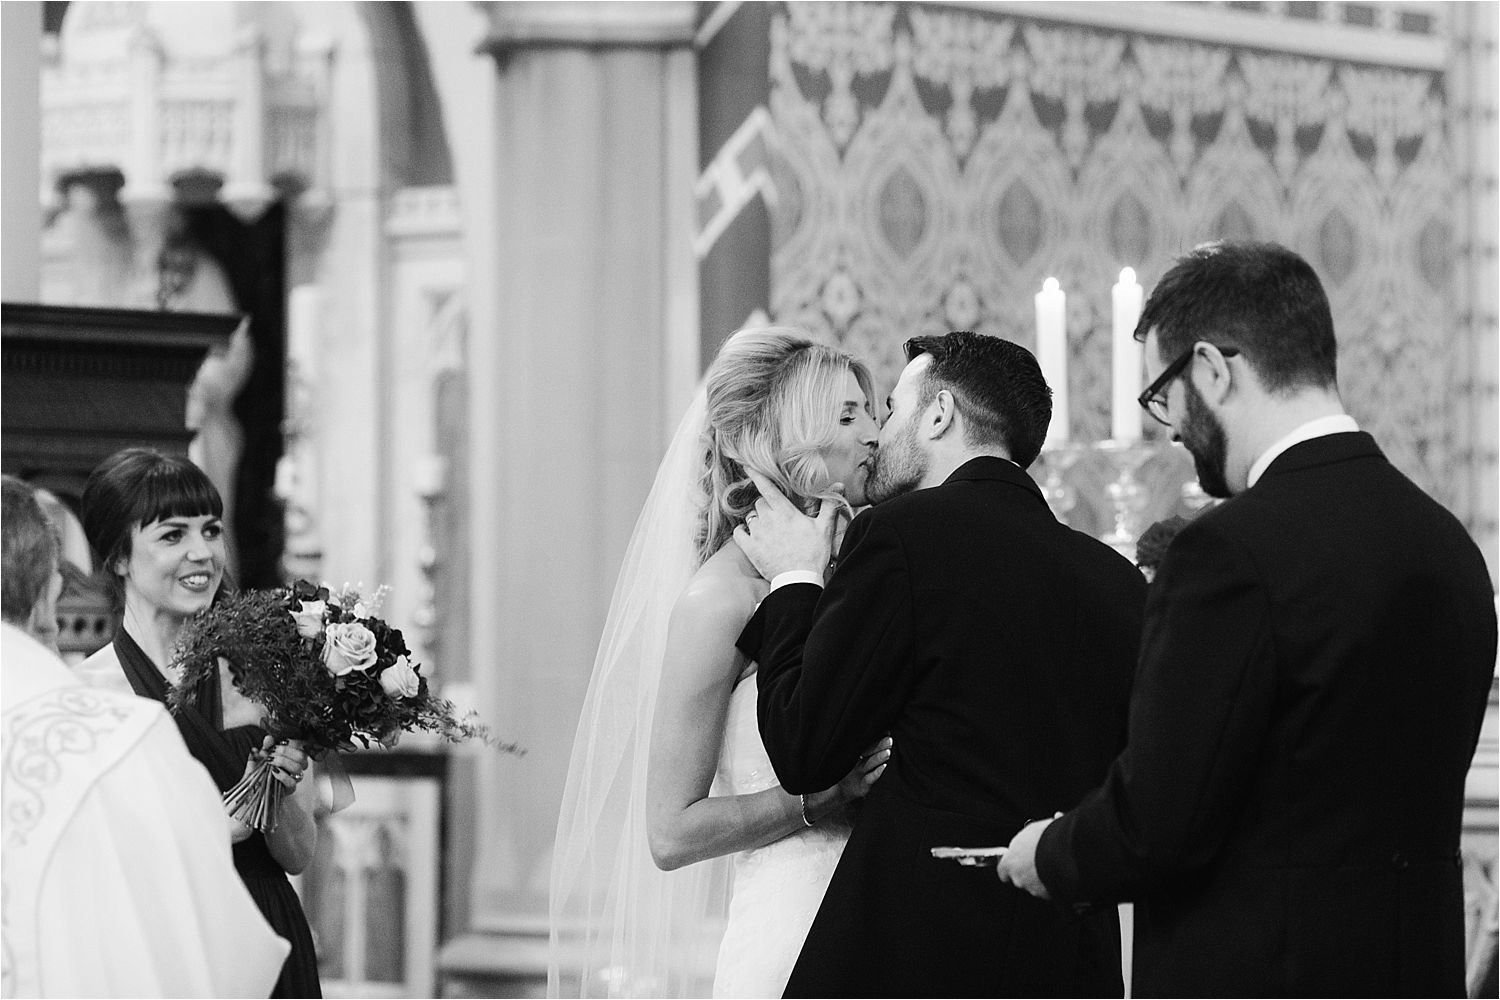 Bride and groom exchange a kiss during wedding ceremony